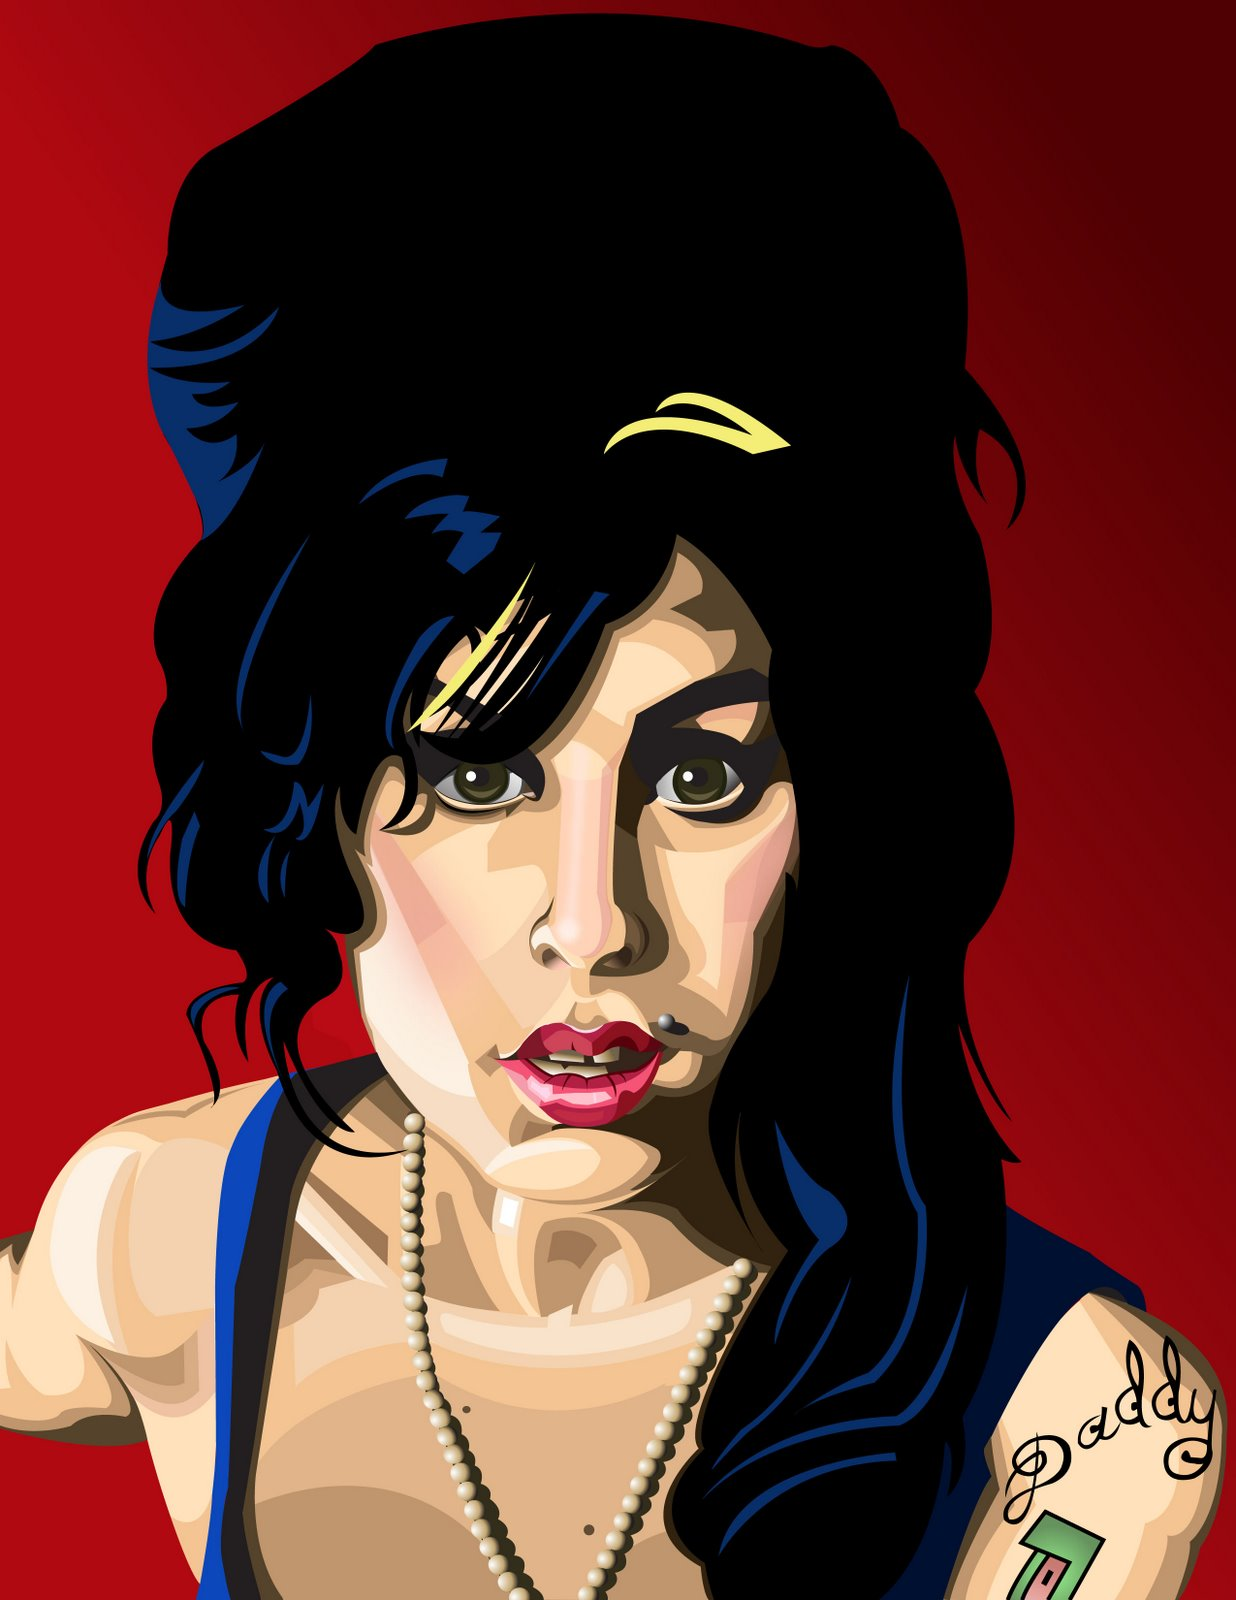 Happy birthday to the late Amy Winehouse!!